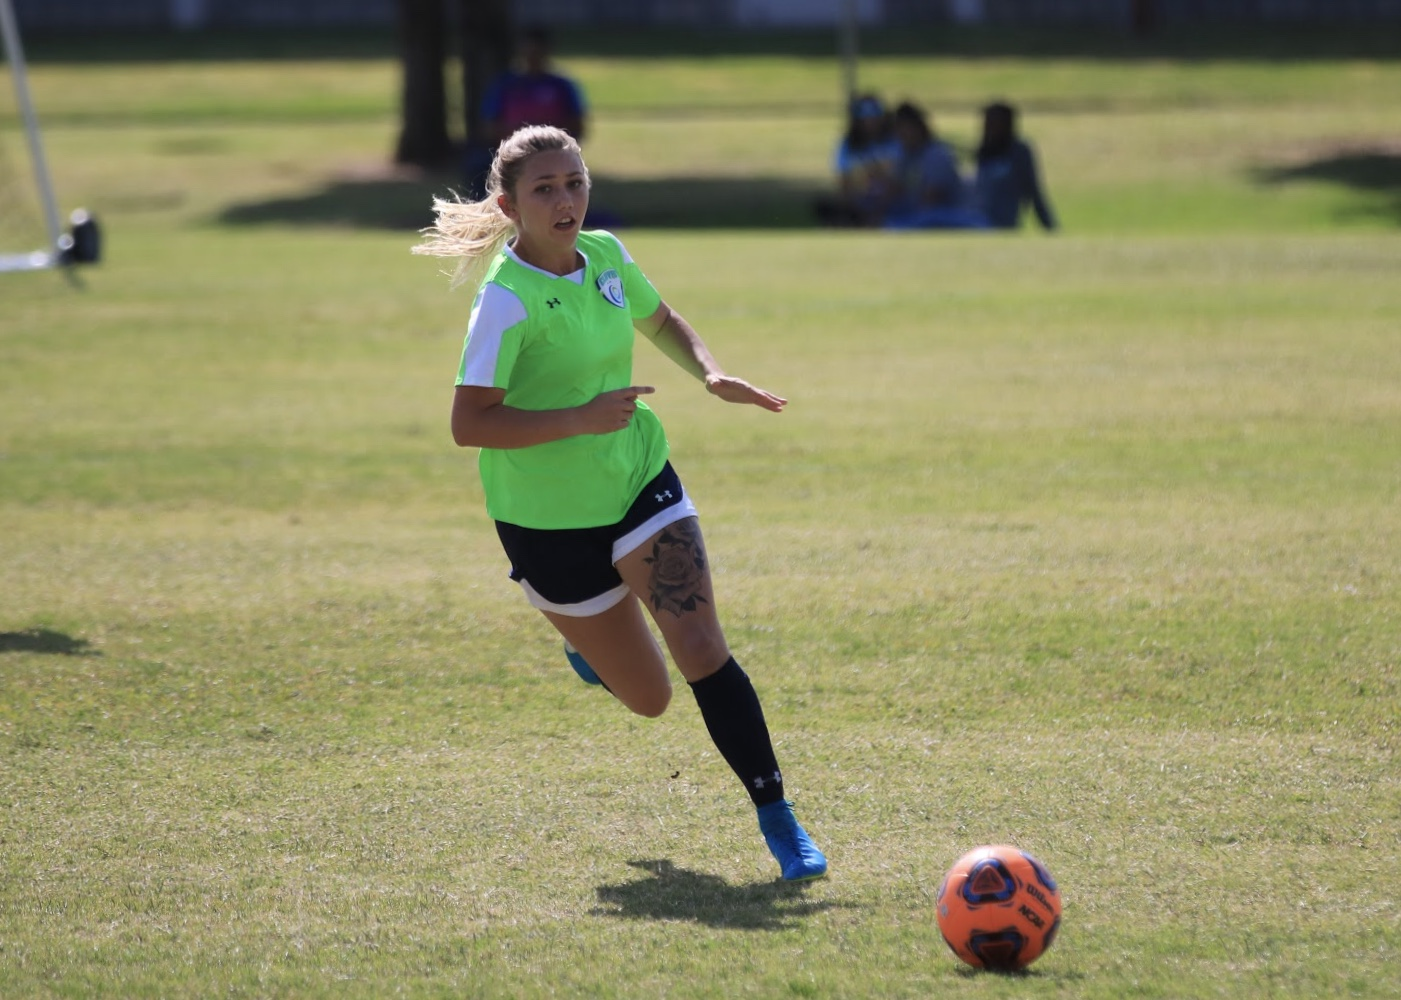 Crush Women Keep the Goals Coming in 6-1 Win